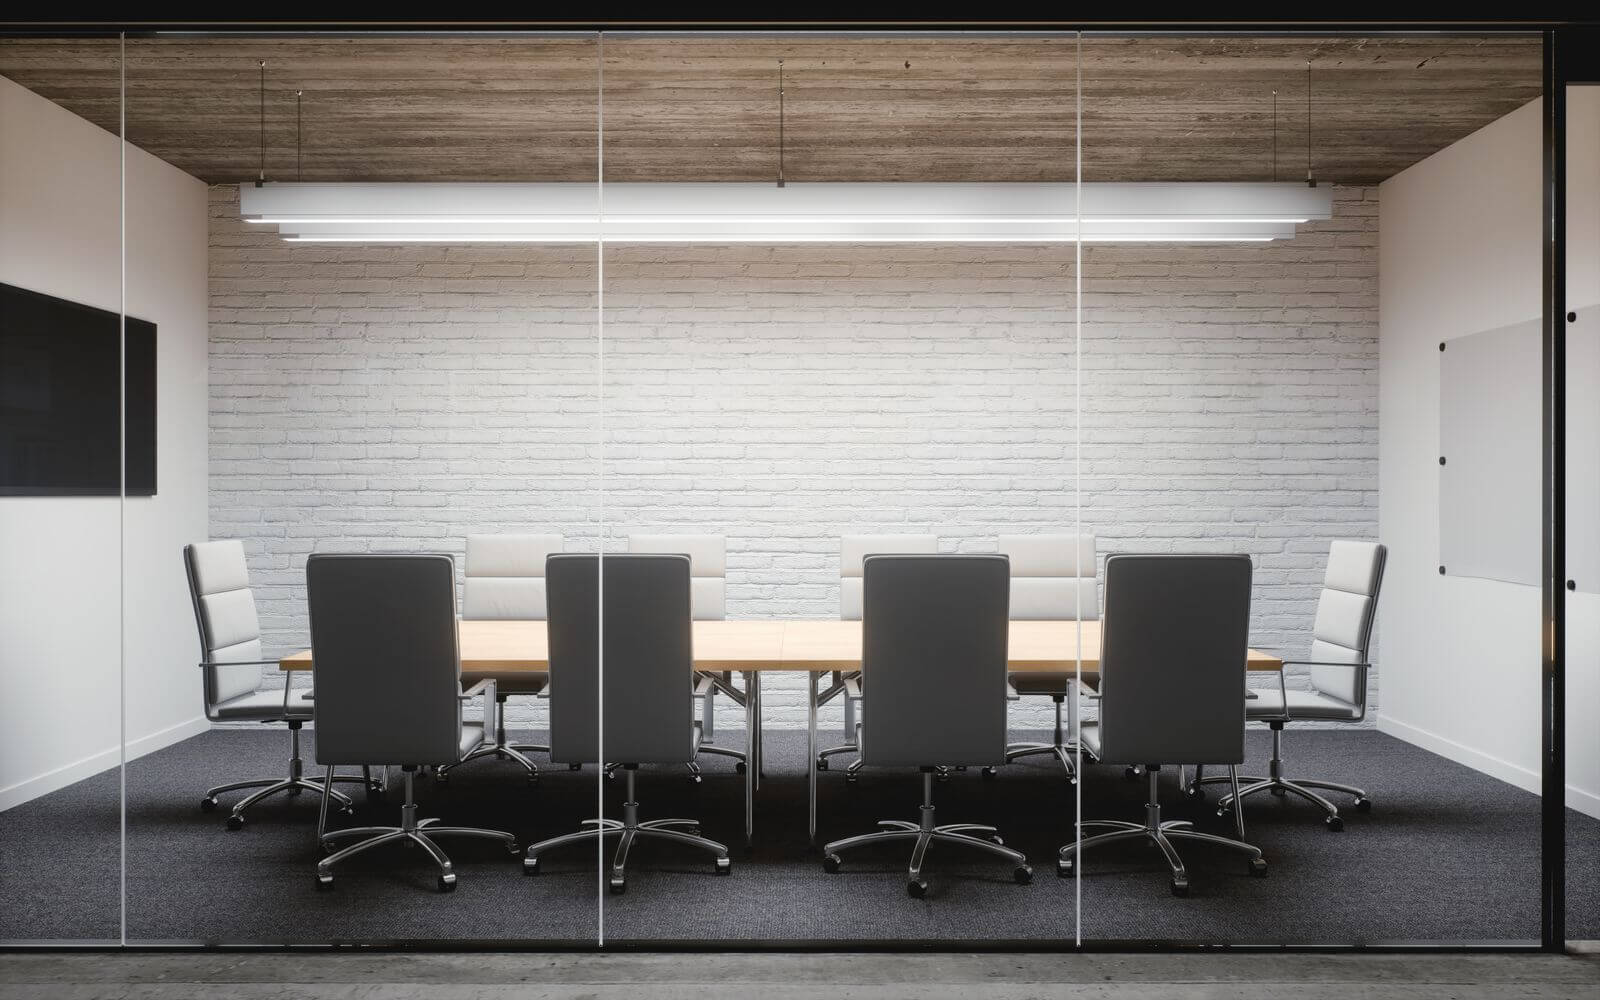 Conference room with glass walls